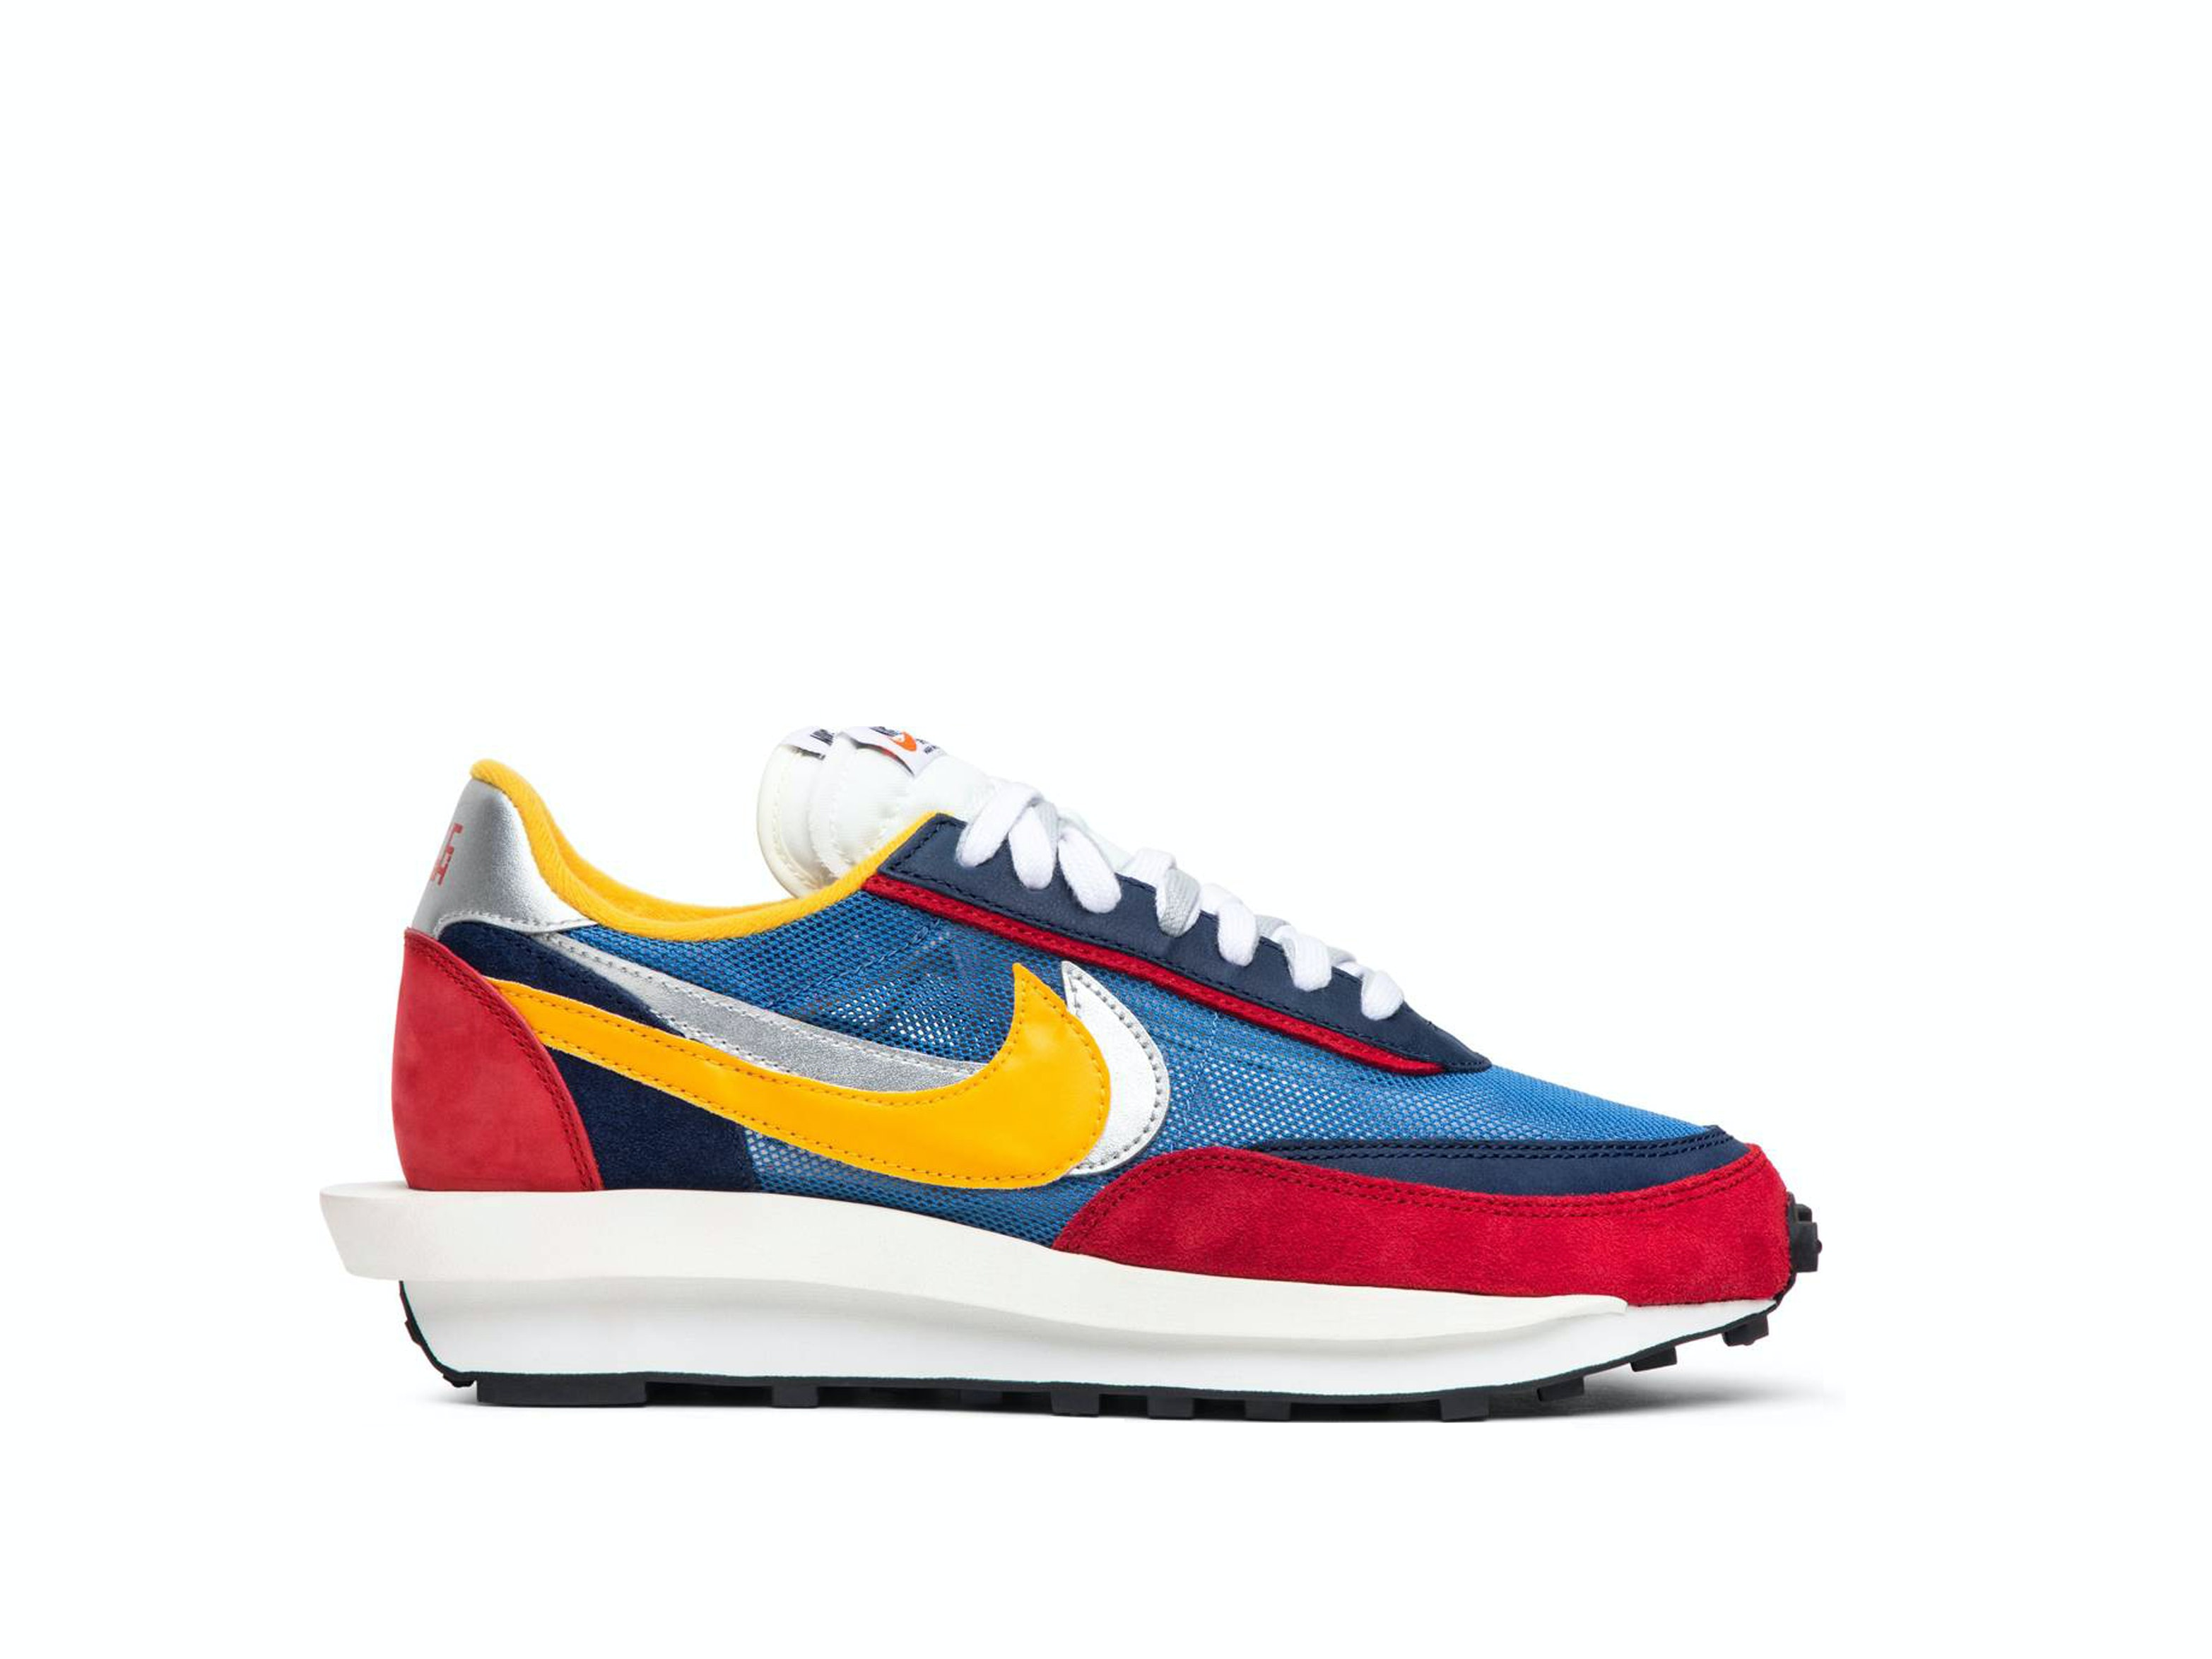 separation shoes 53b2a 5961f Nike LDV Waffle x Sacai Daybreak Blue